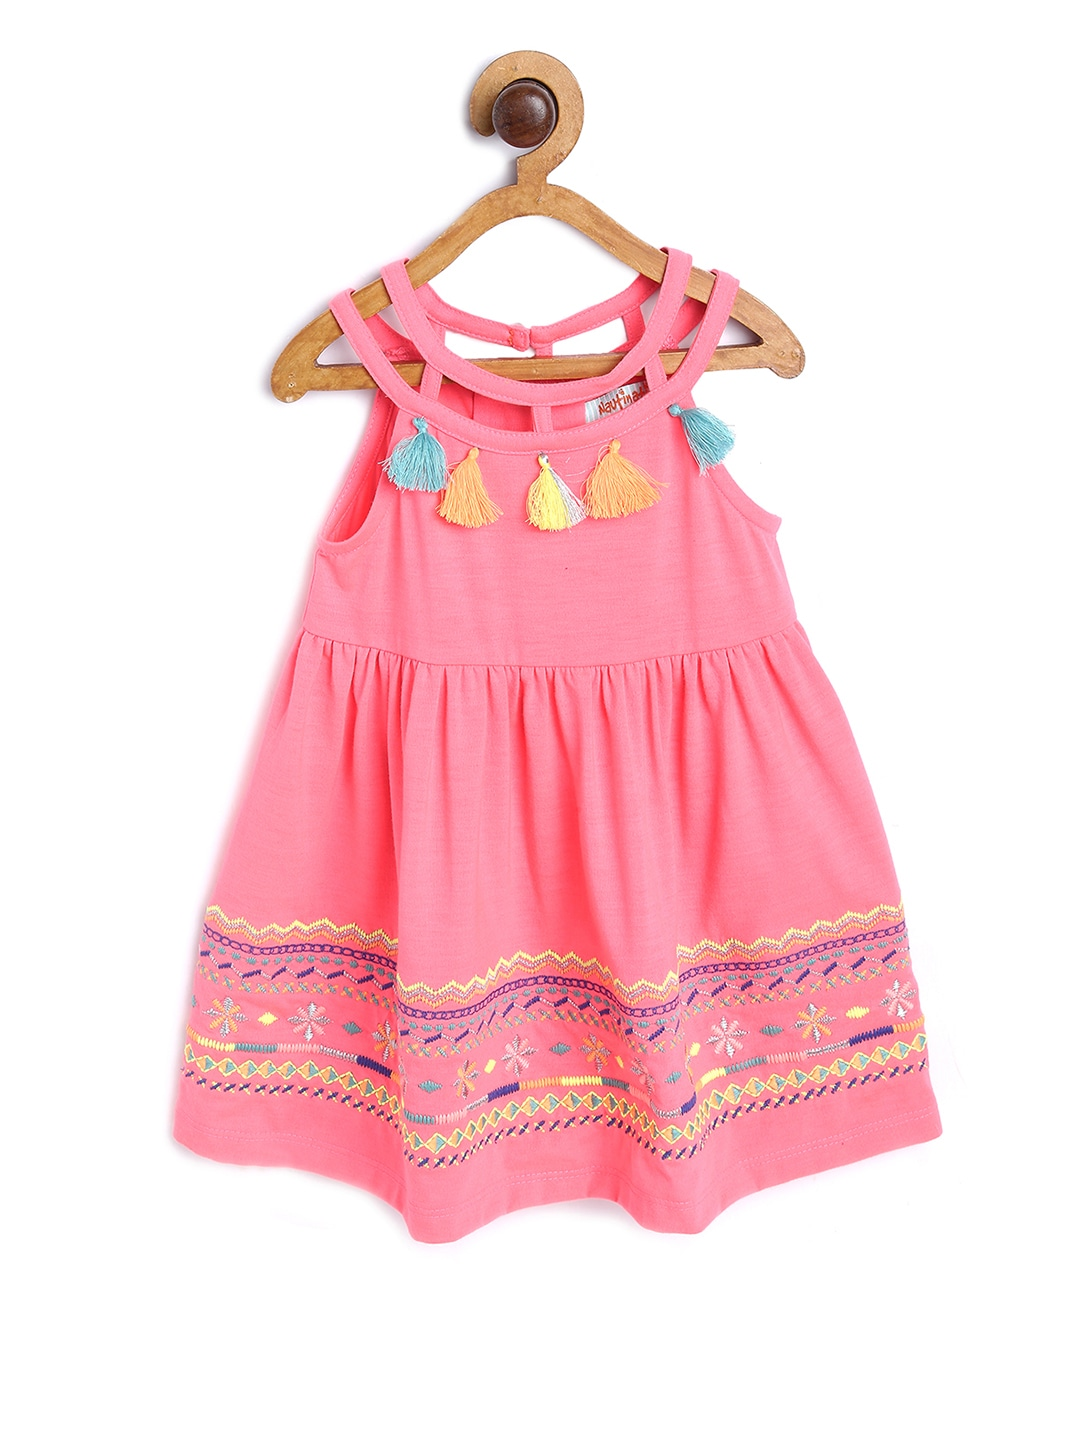 73574e69b2 Girls Clothes - Buy Girls Clothing Online in India